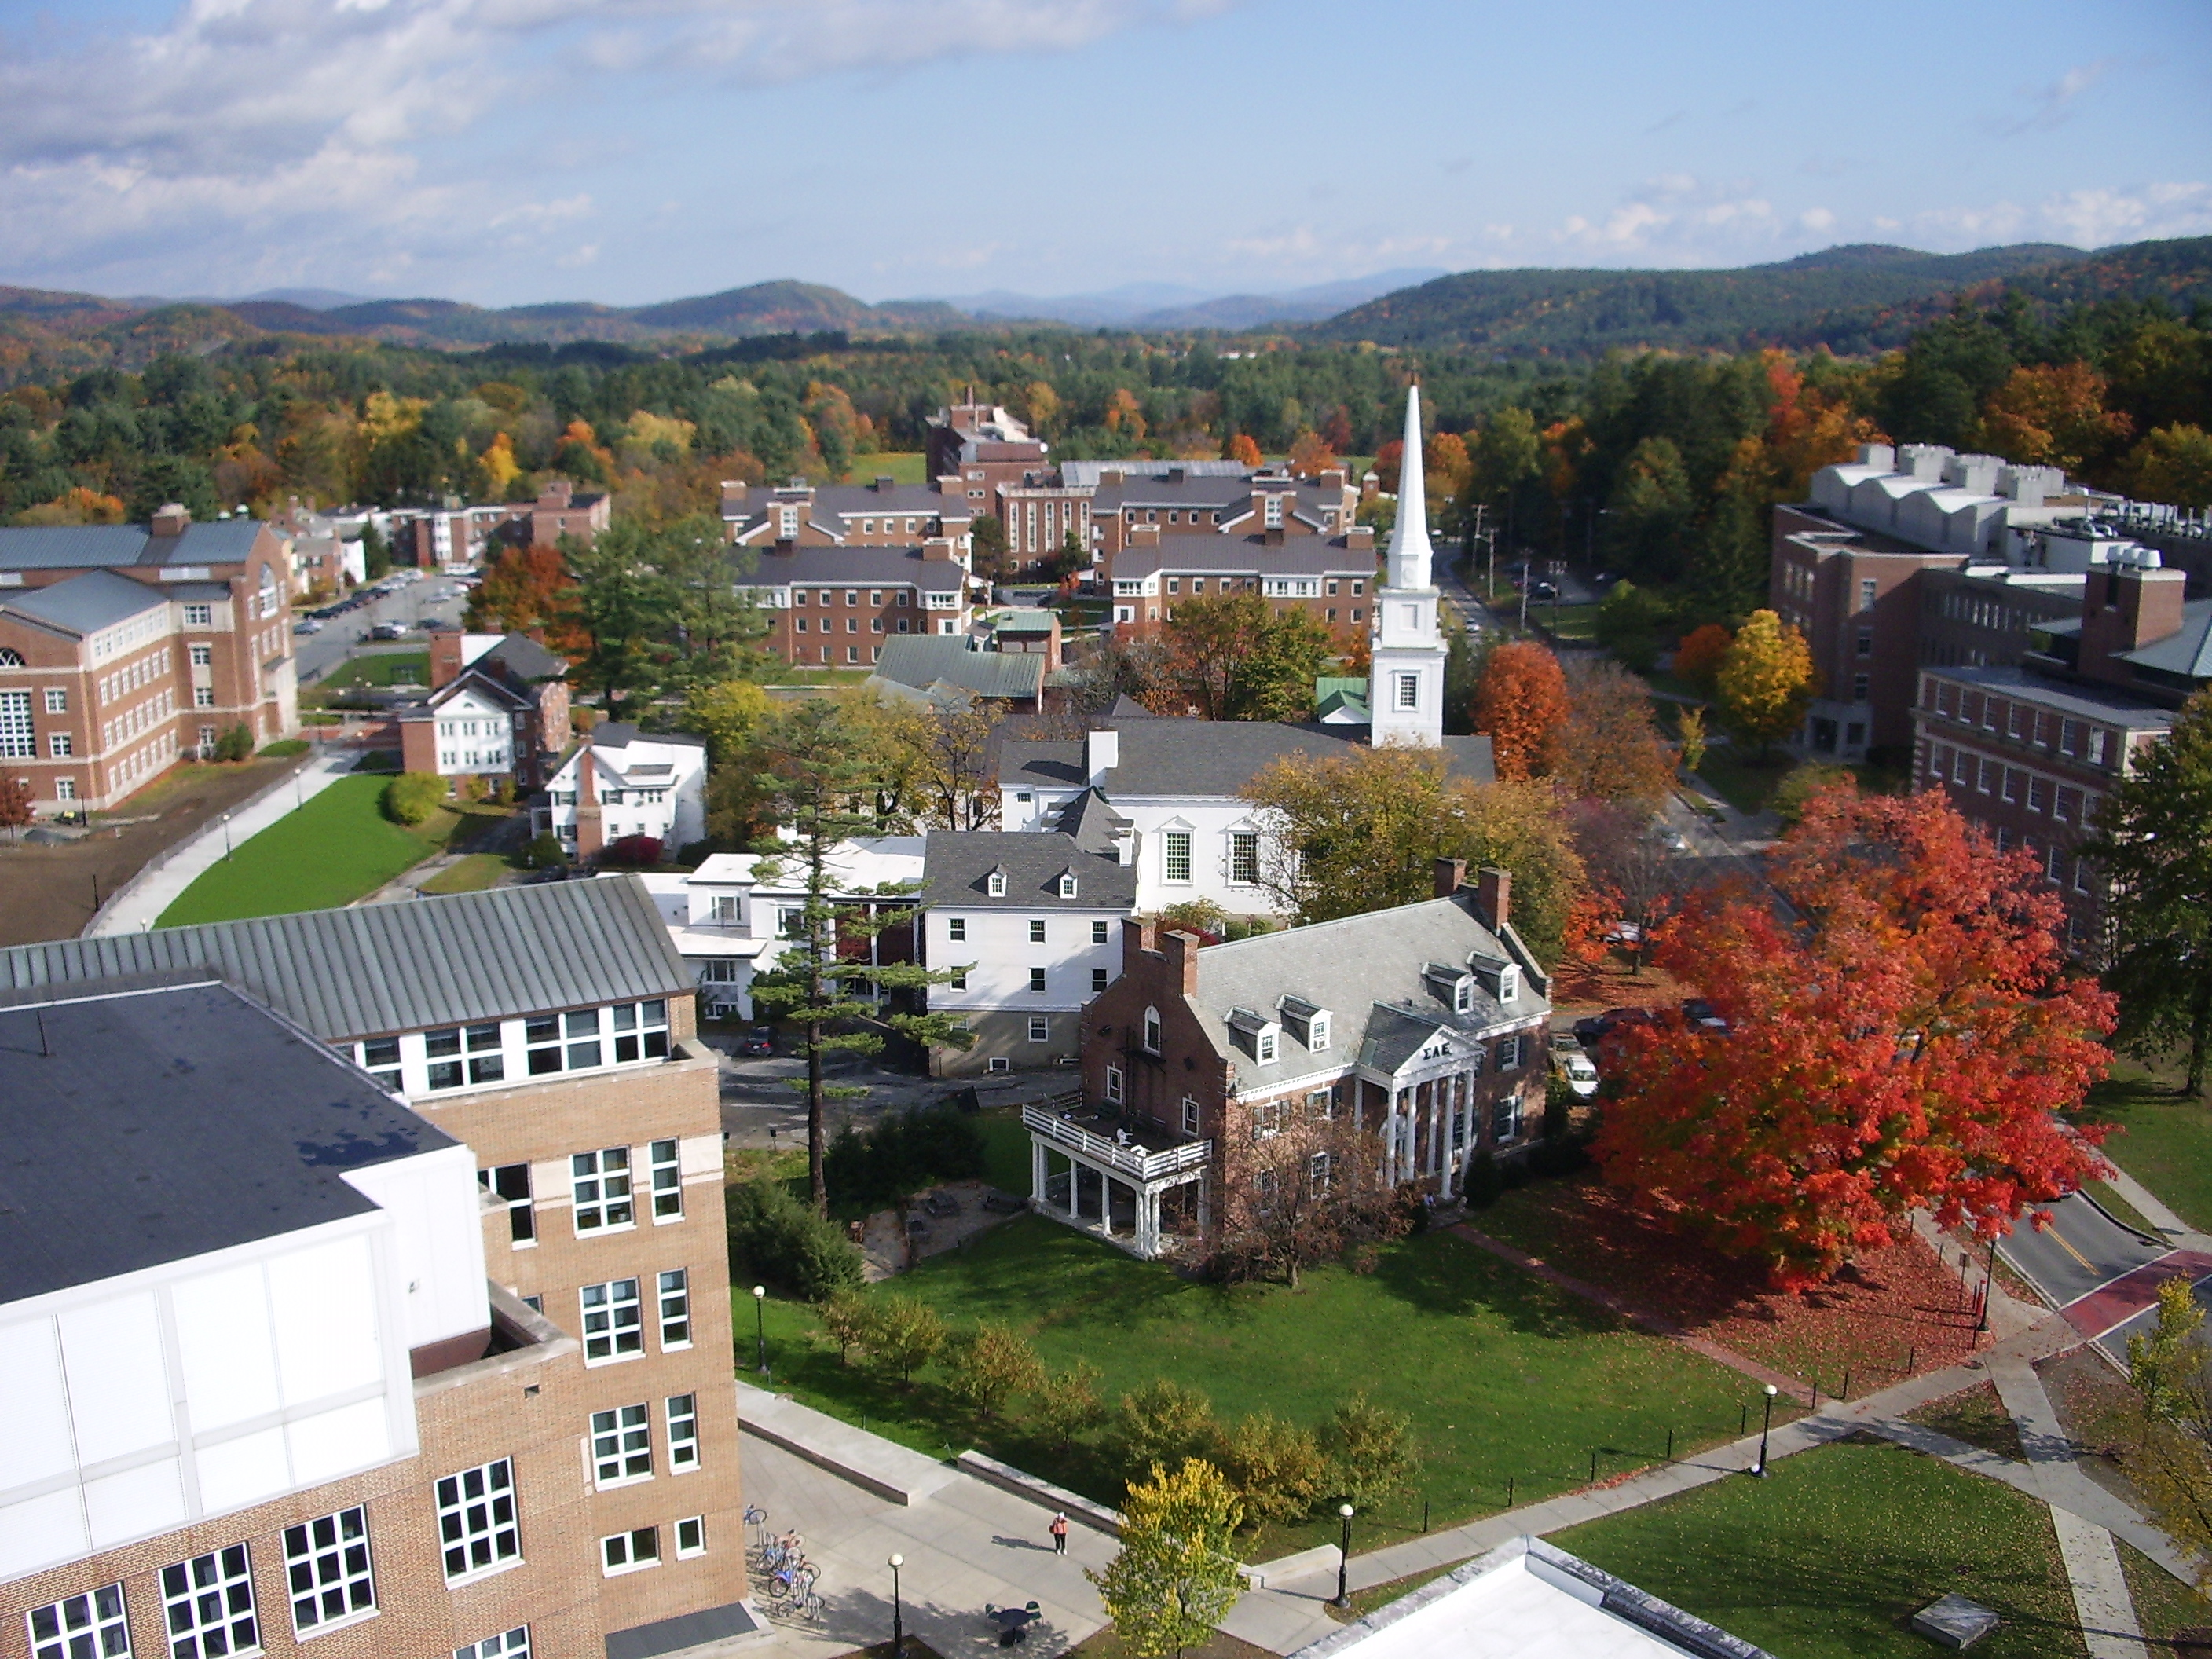 File:Dartmouth College campus 2007-10-20 10.JPG